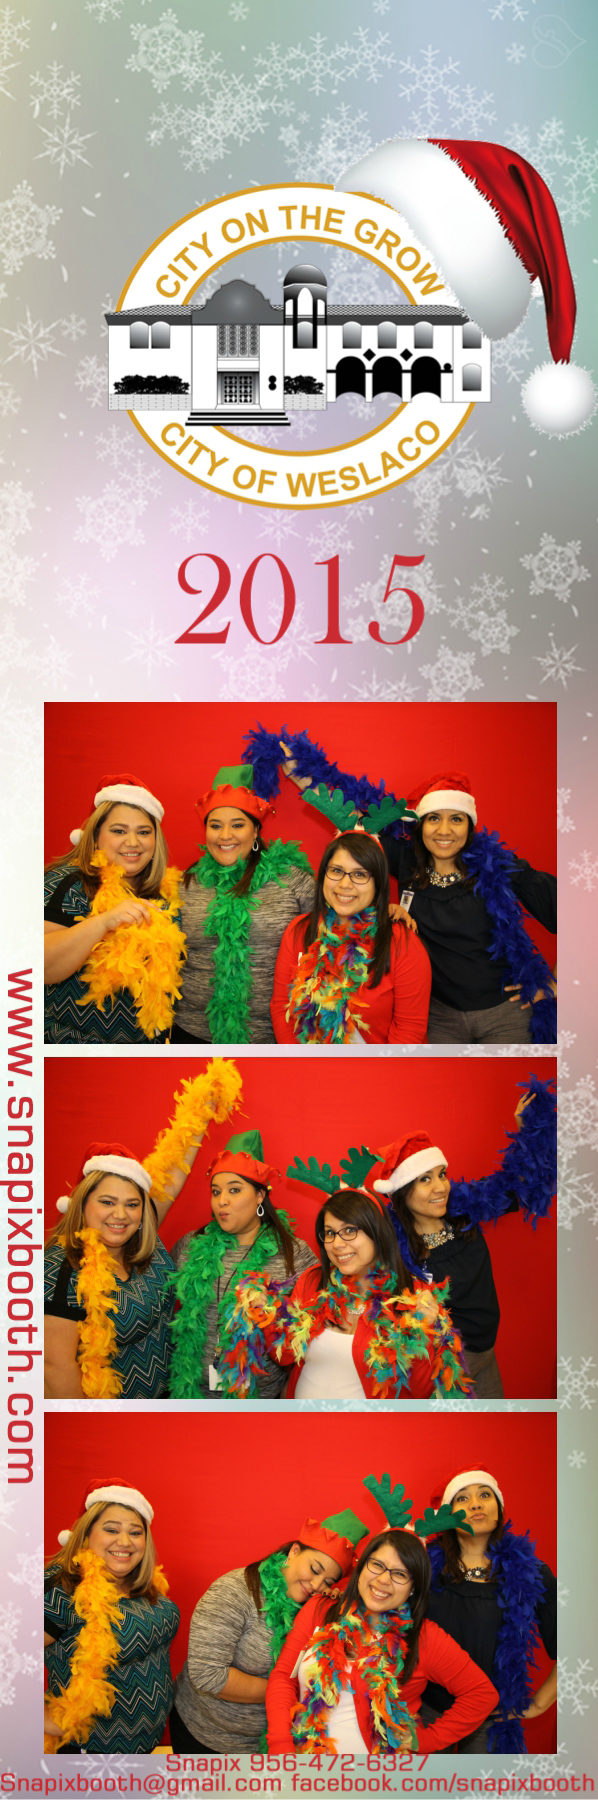 City of Weslaco Christmas Party